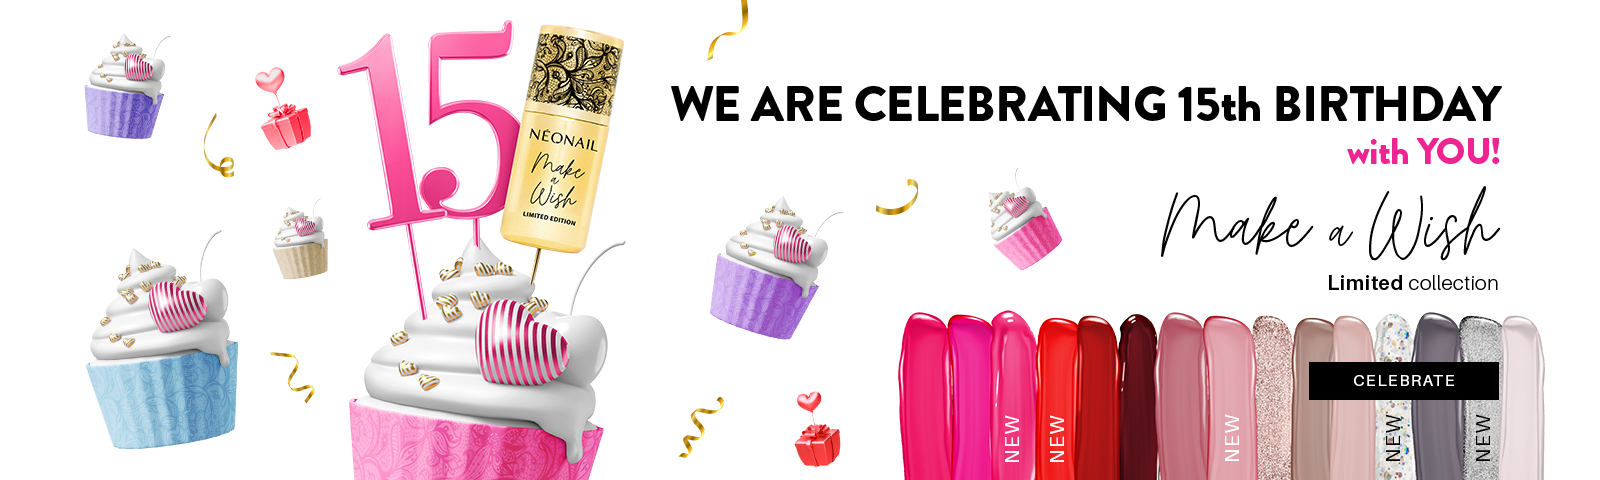 Make a wish DISCOVER ALL COLORSOF LIMITED BIRTHDAY COLLECTION  CELEBRATE